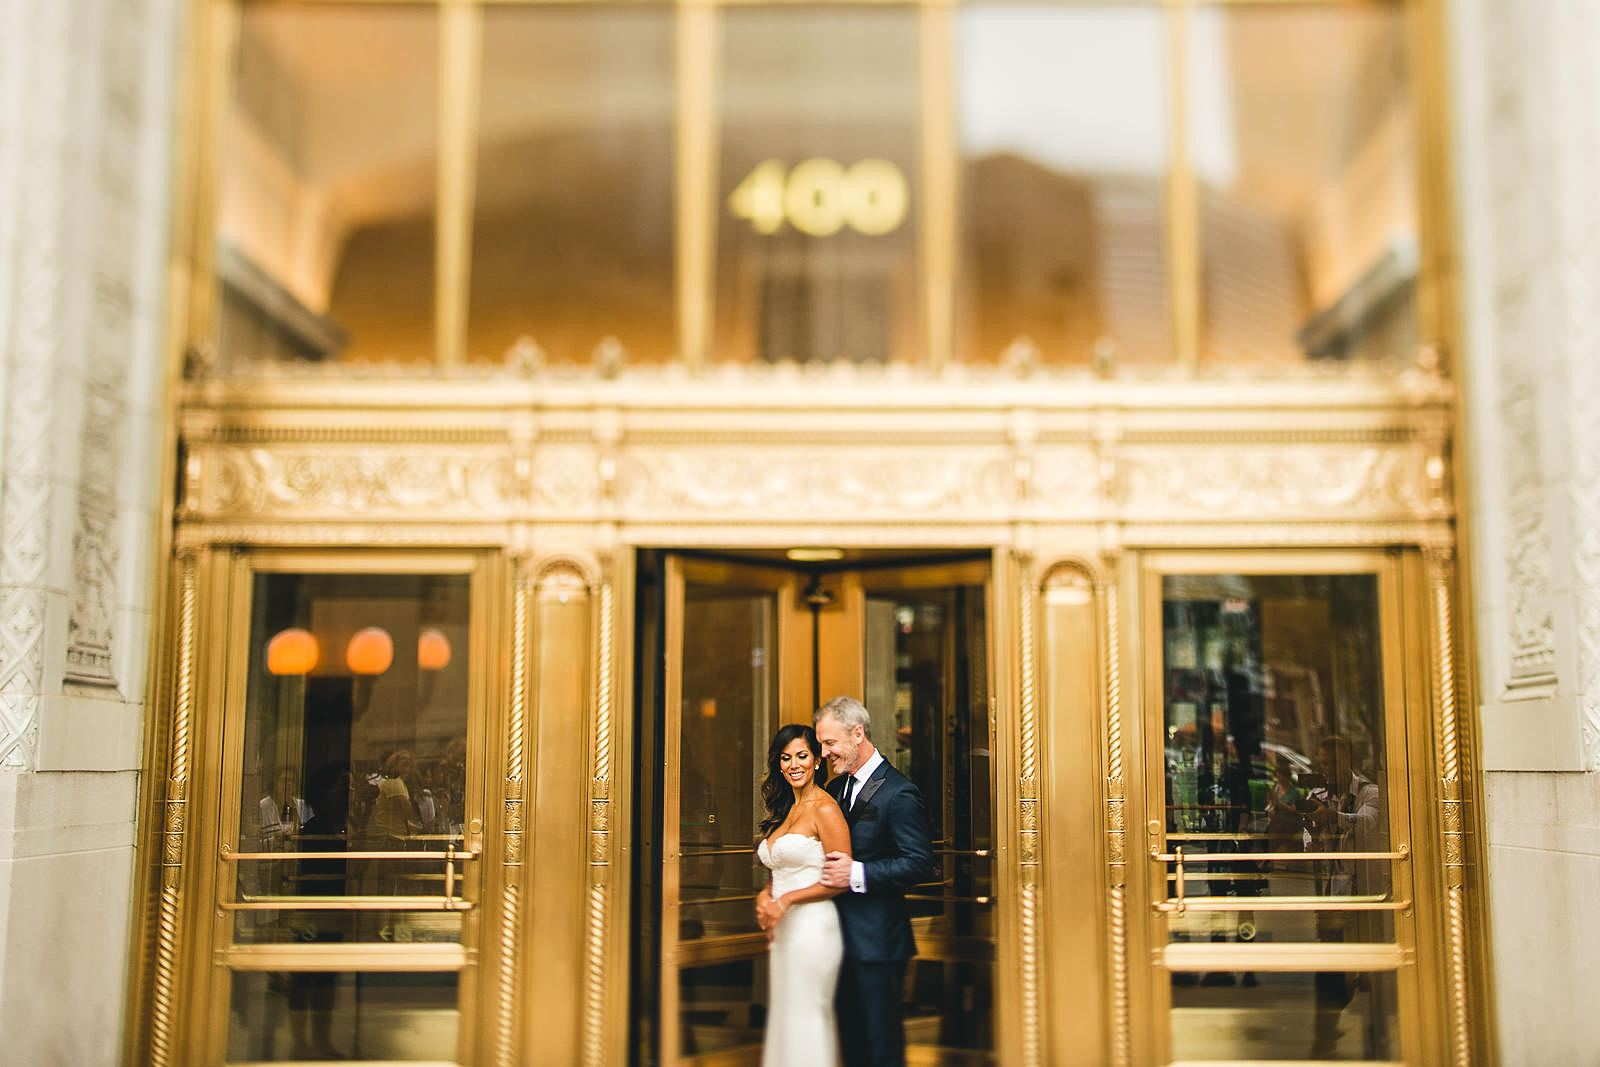 13 chicago wedding photography - Intercontinental Chicago Hotel Wedding // Lili + Danny